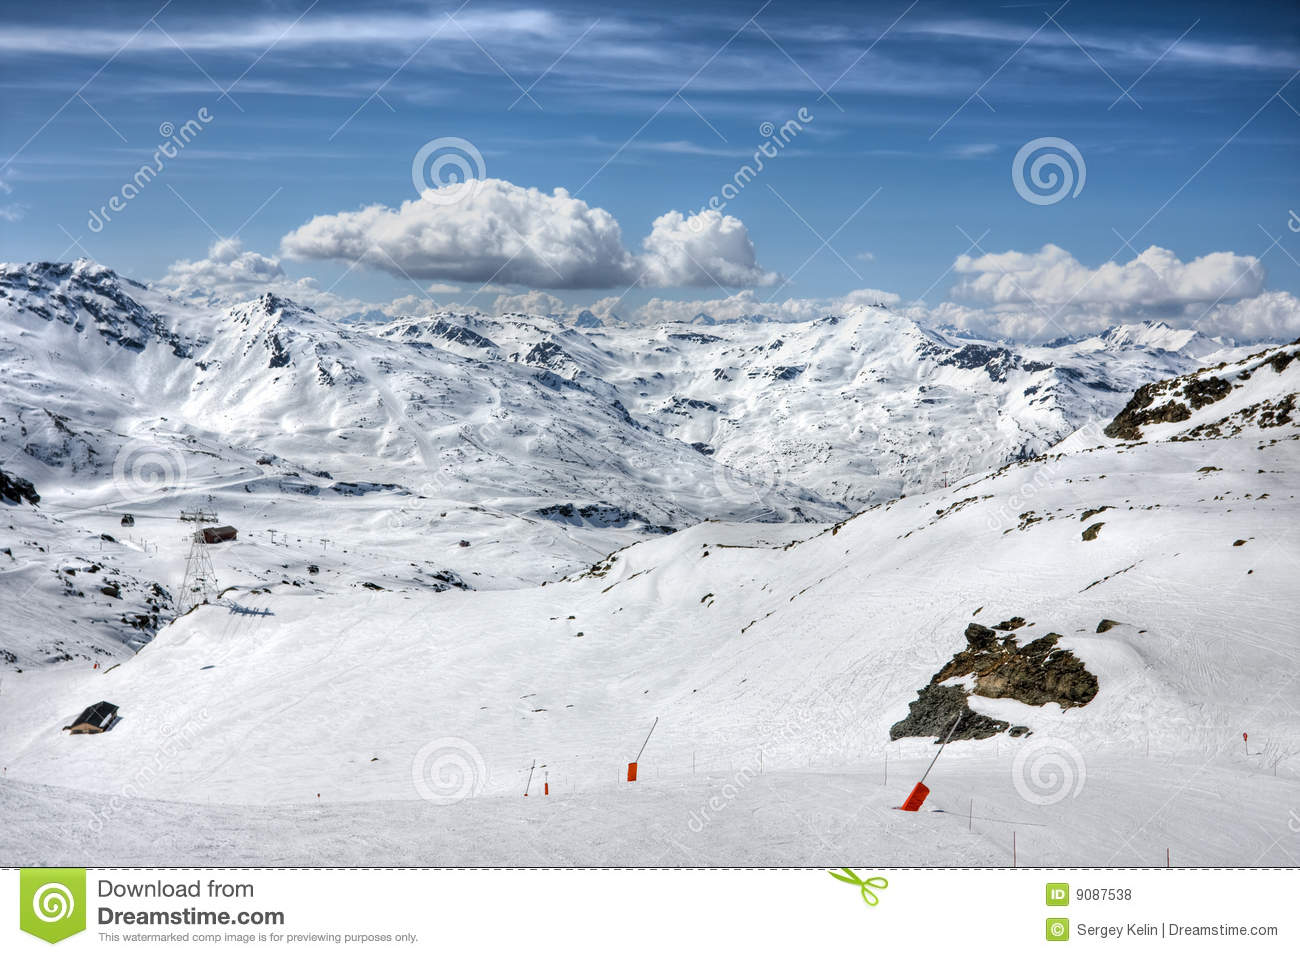 Winter-Alpenlandschaft vom Skiort Val Thorens